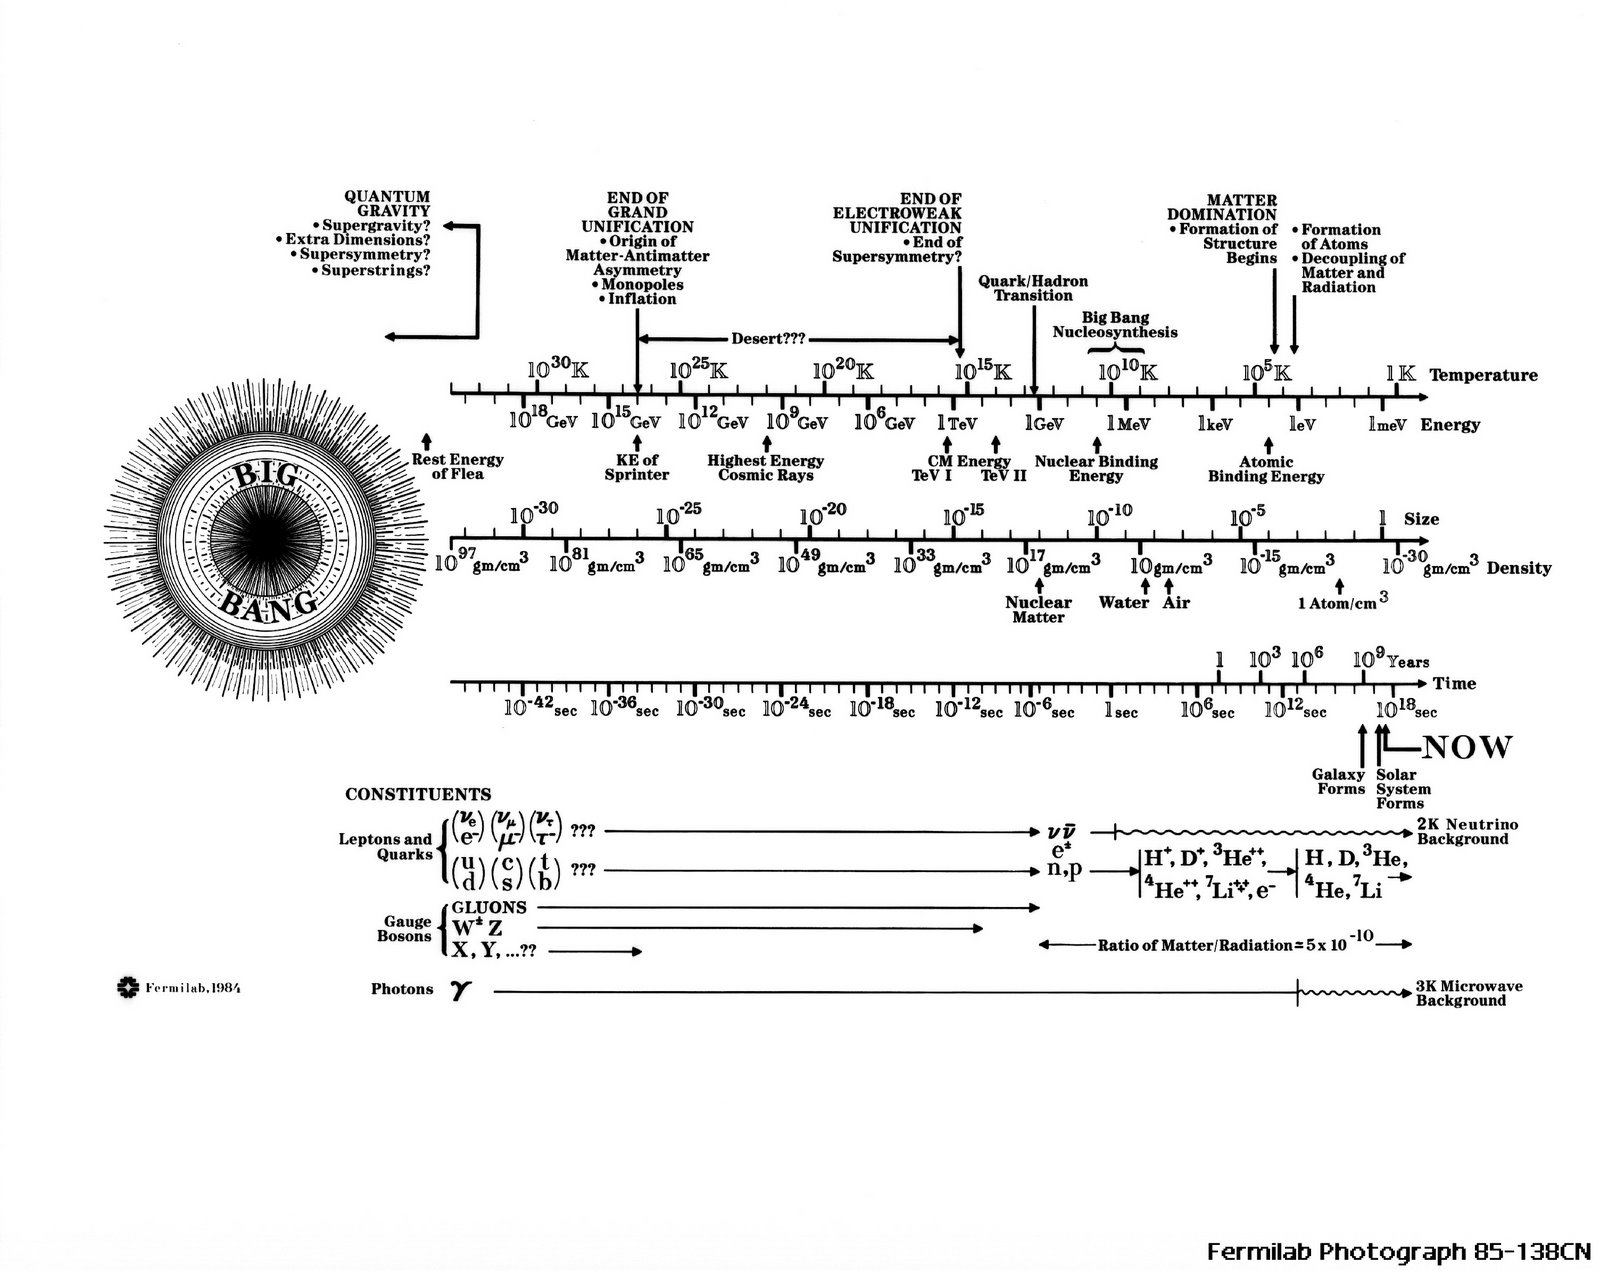 Fermi lab s history of the universe timeline from 1985 posted by